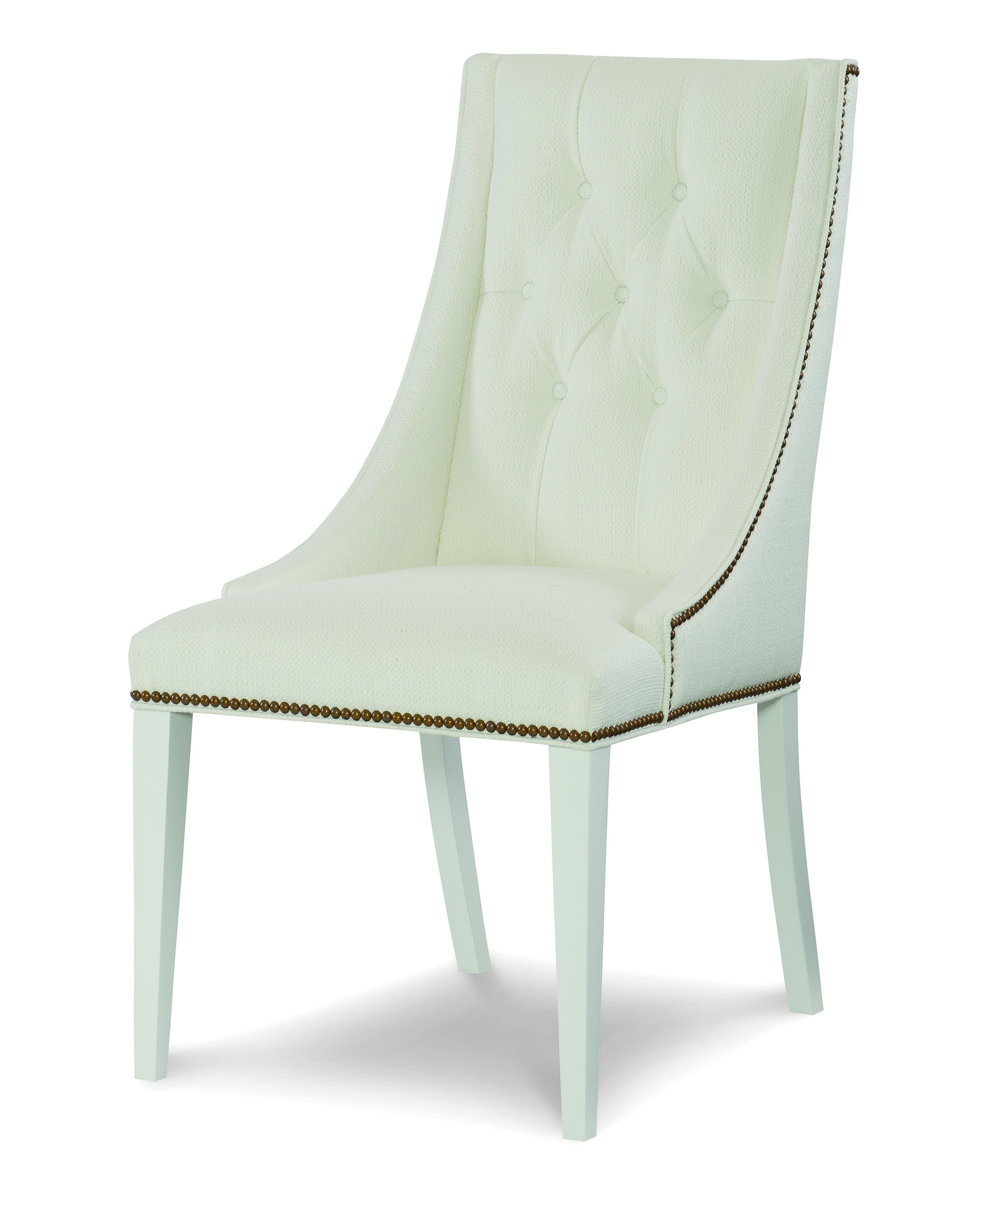 Century Furniture - Claire Tufted Side Chair